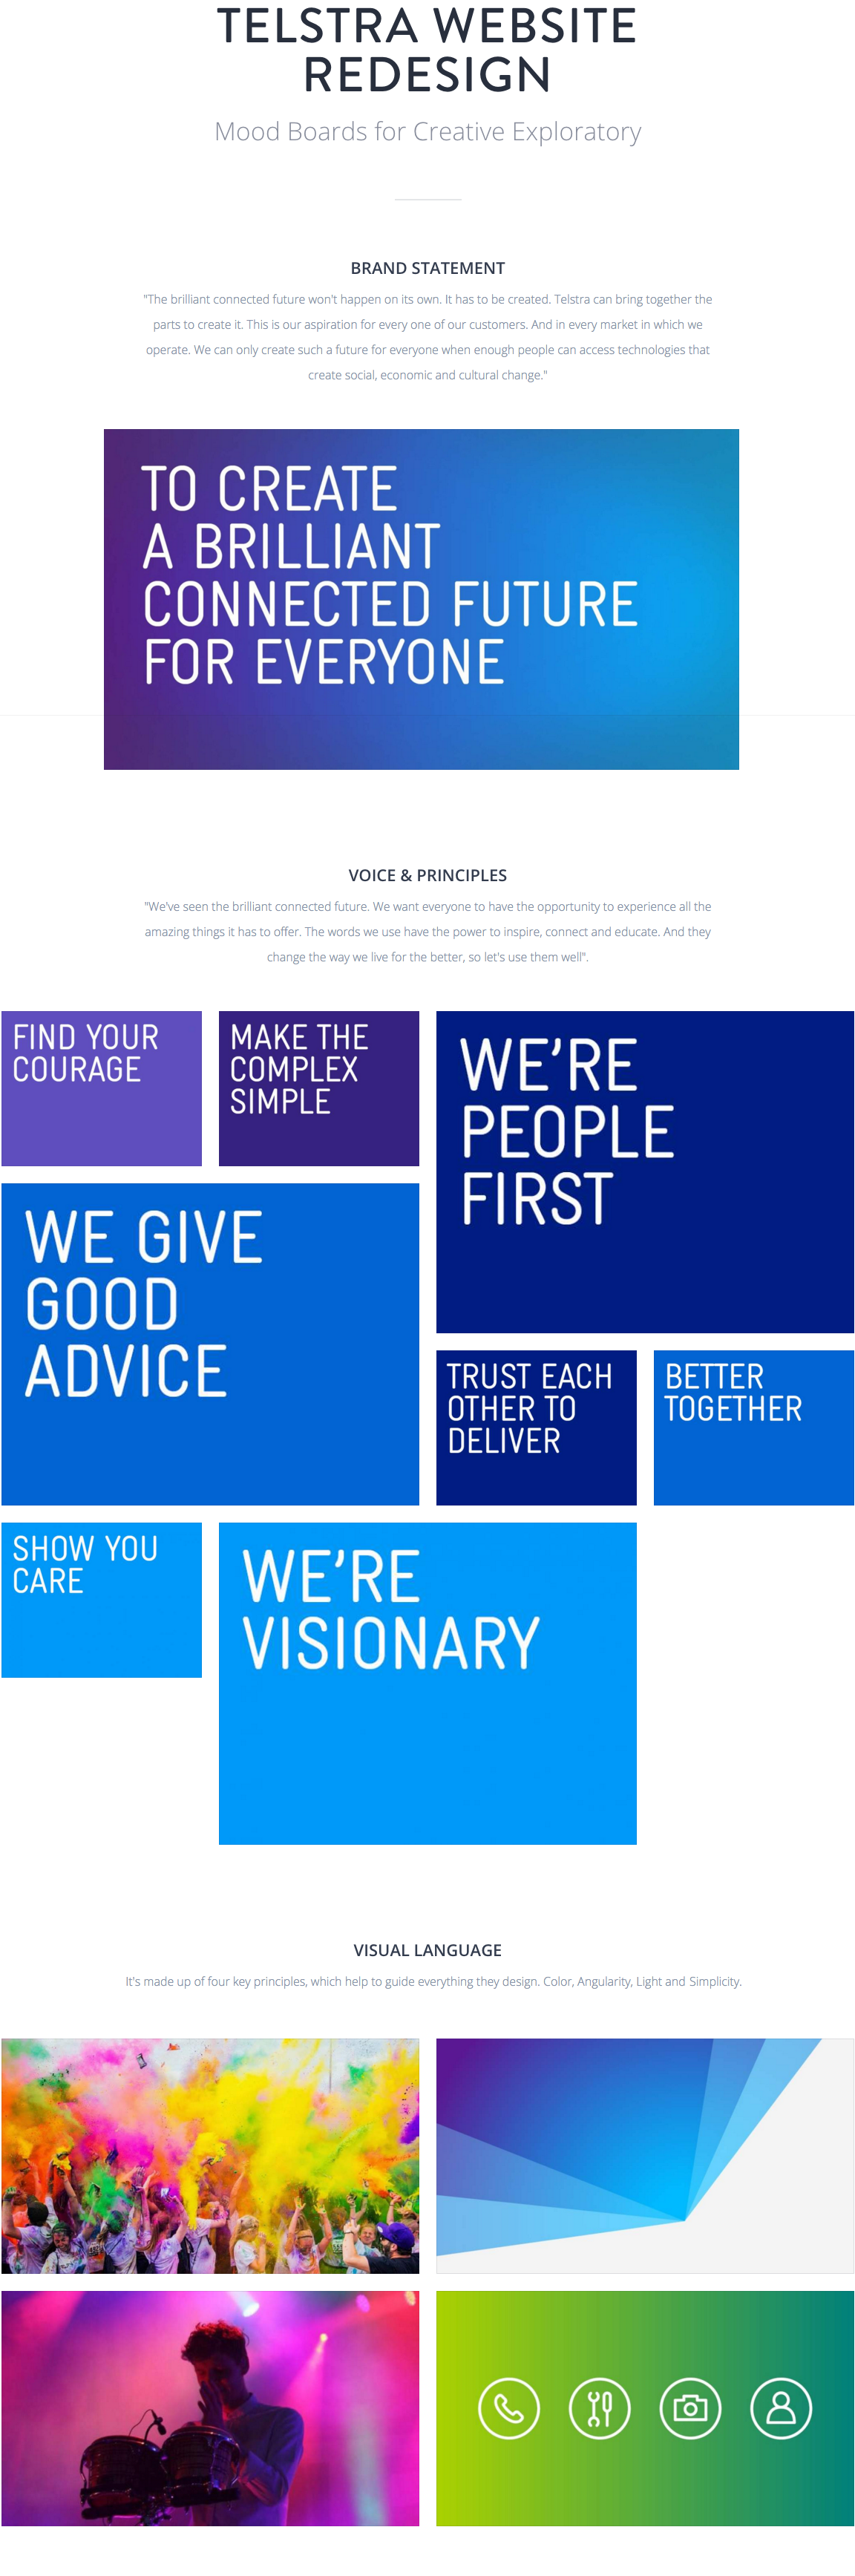 01Invision_Telstra_Website_Redesign